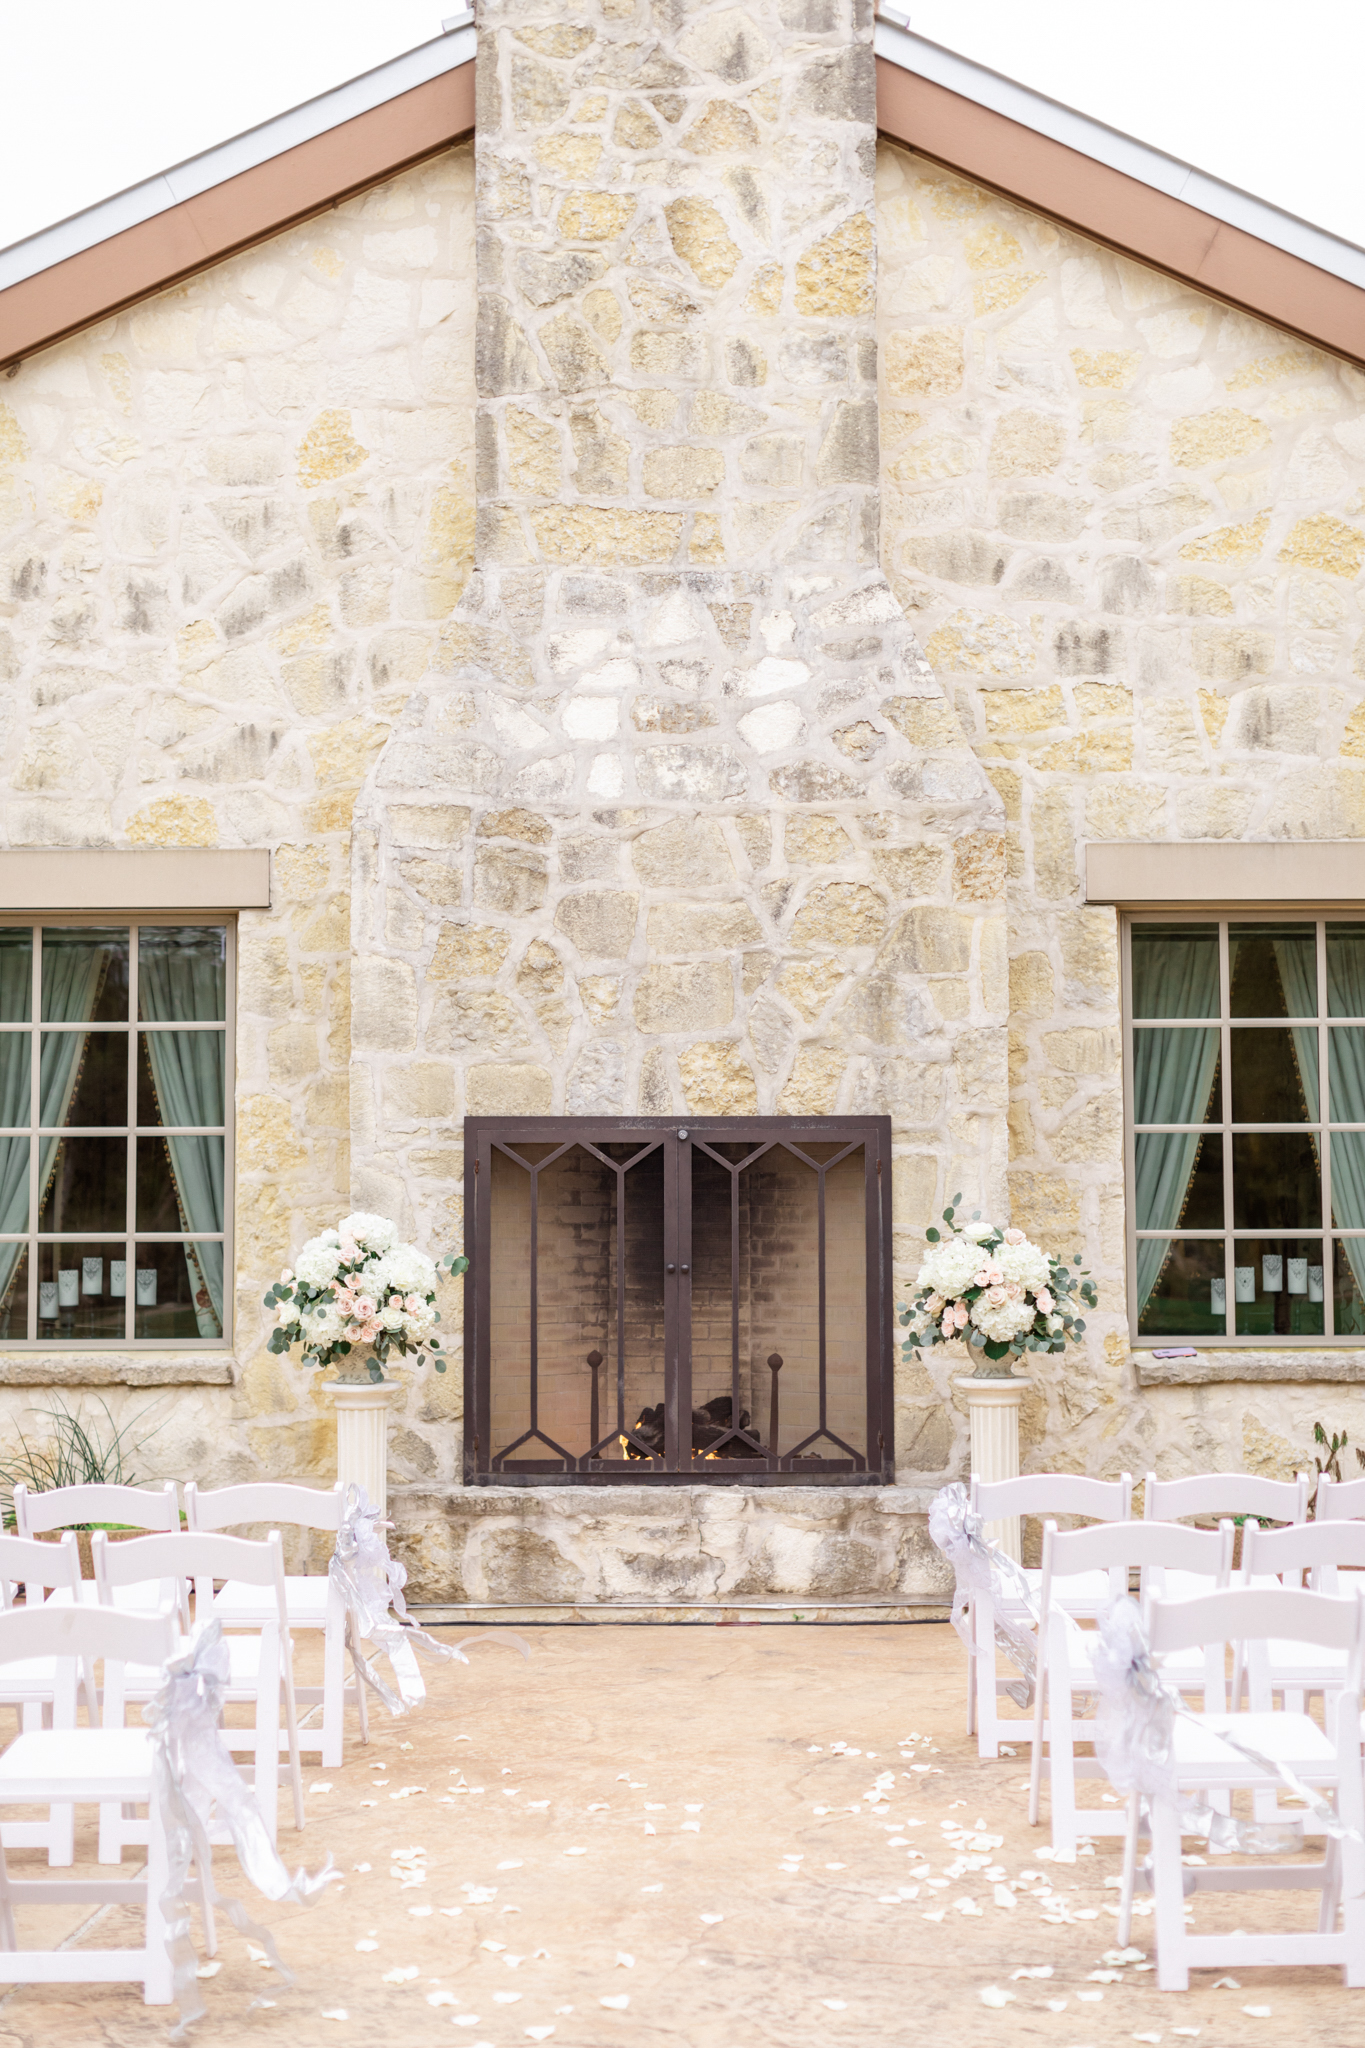 San Antonio Austin Boerne New Braunfels Texas Wedding Engagement Photographer Photography Hill Country Texas JW Marriott Sunday House Wedding Spring Wedding Coral Pink Intimate Wedding San Antonio Austin Texas photographer 3